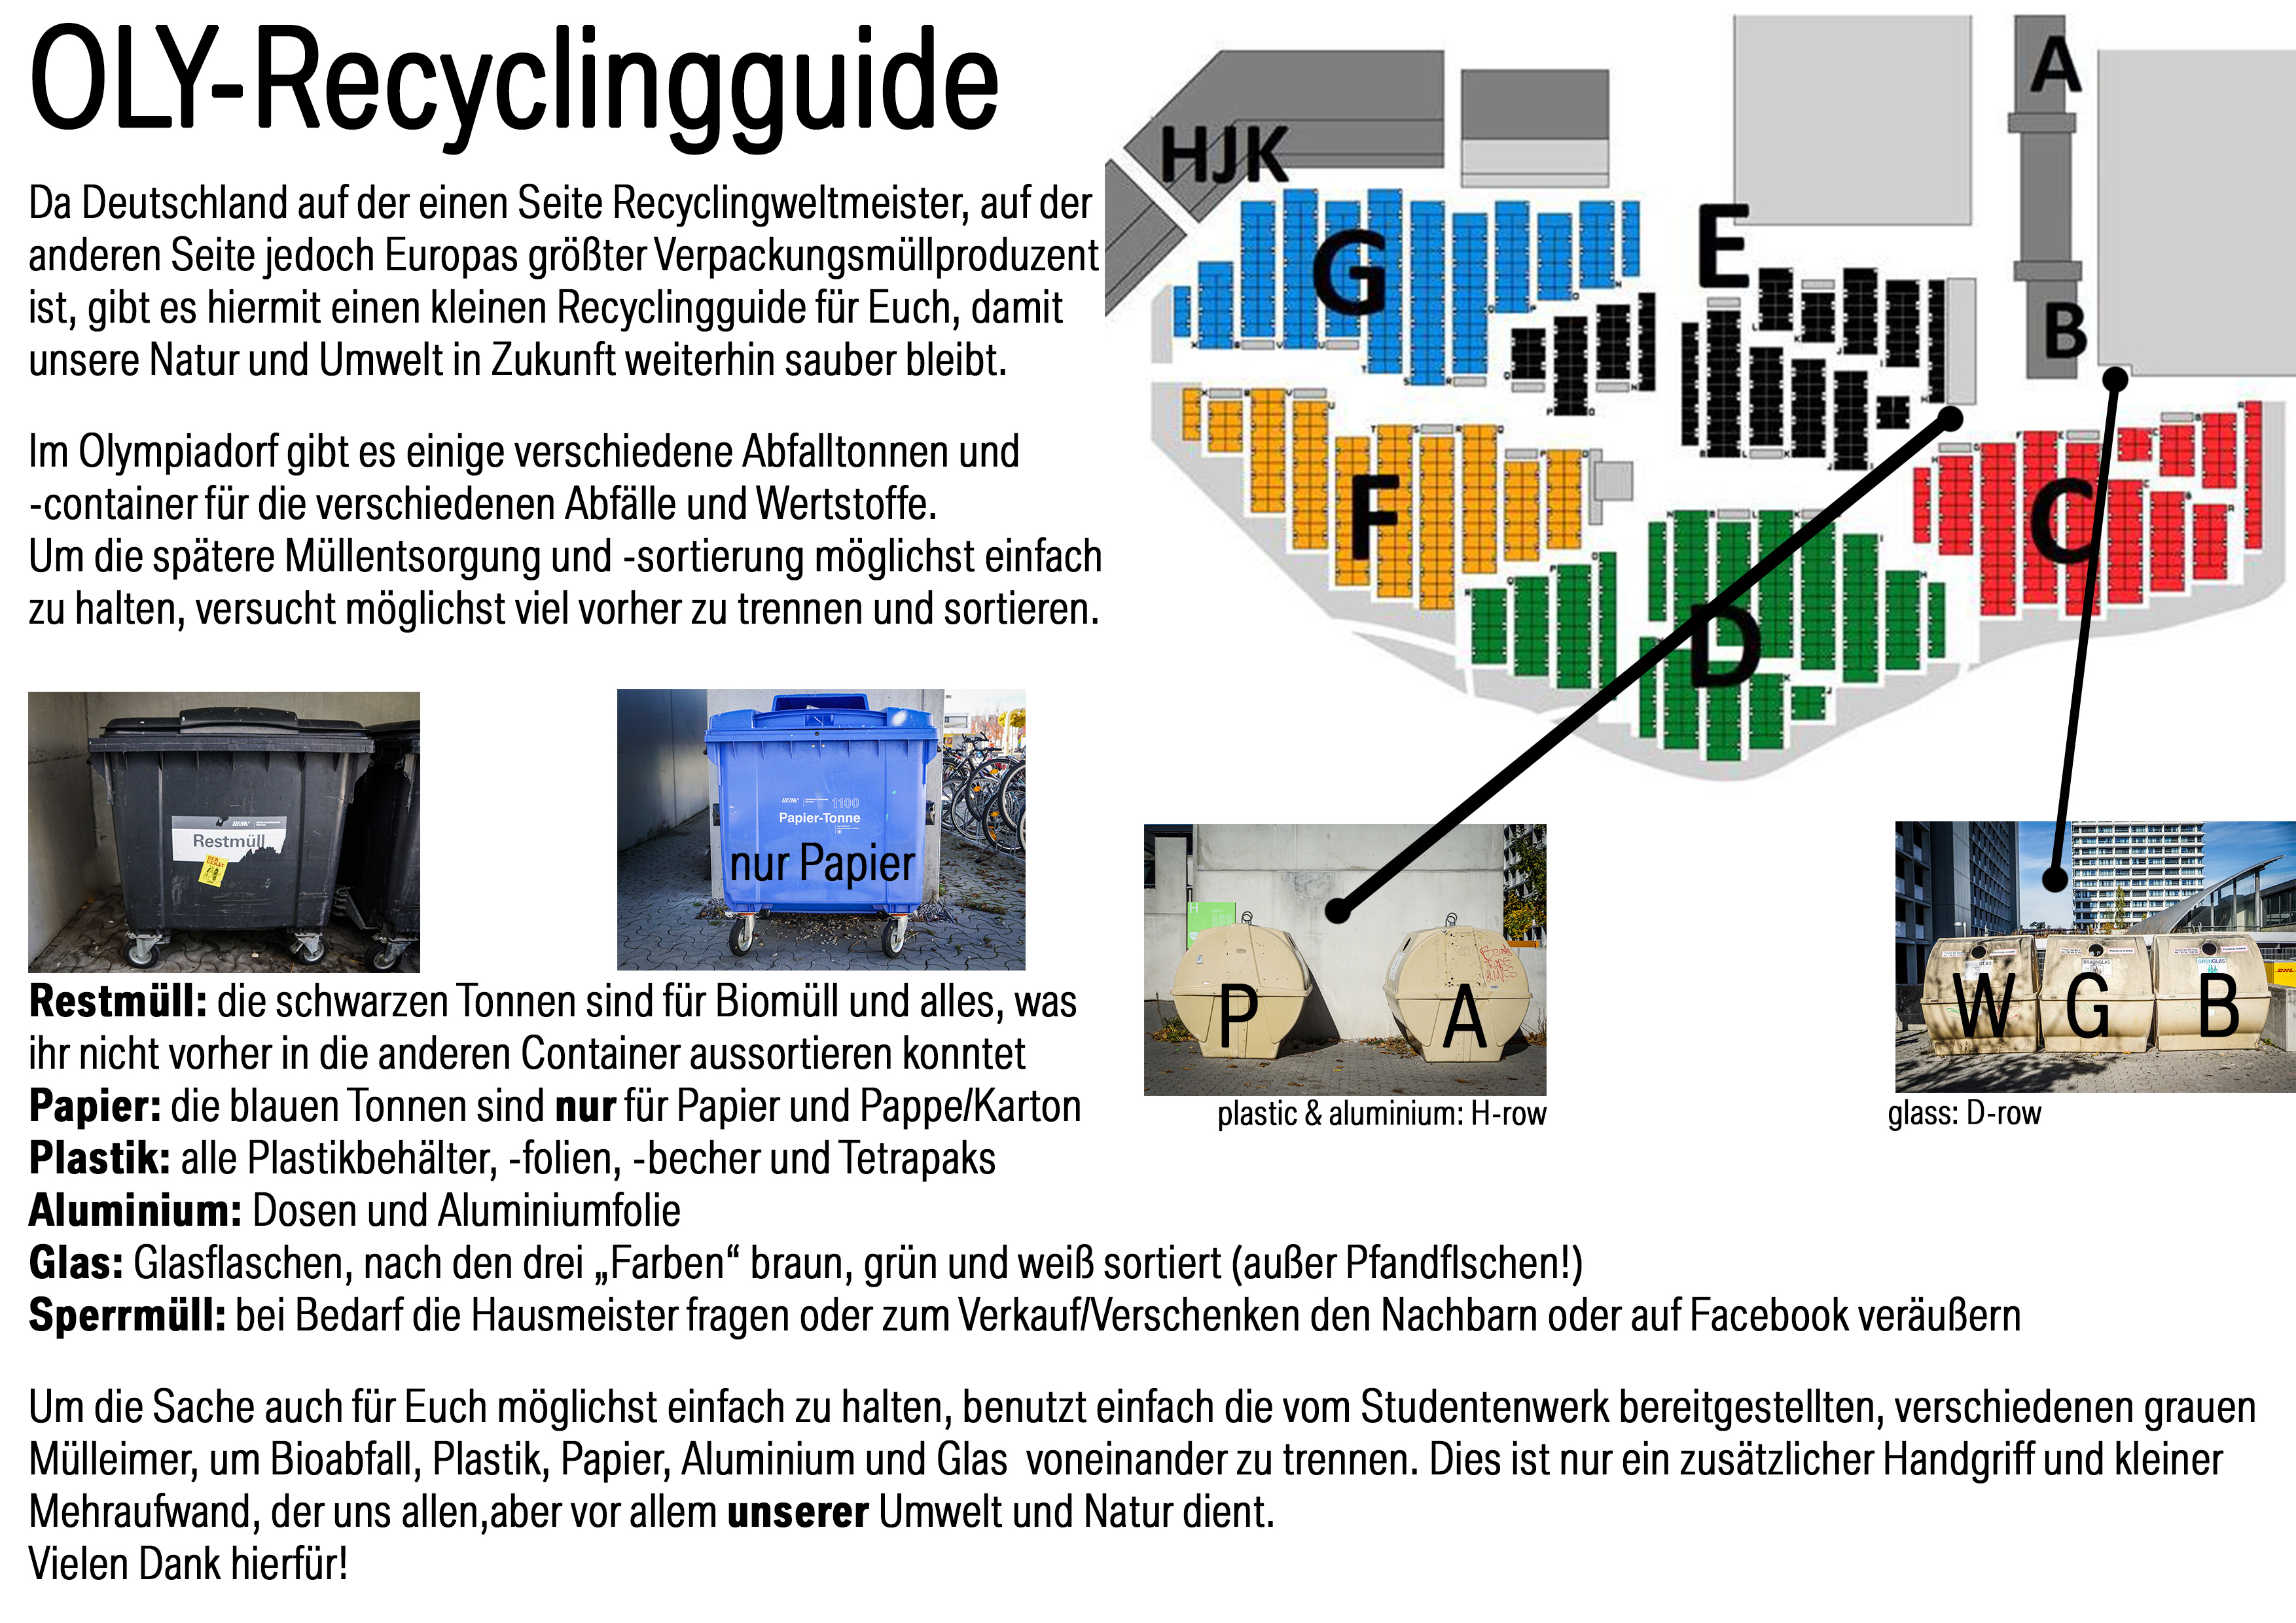 OLY-RecyclingguideDeutsch